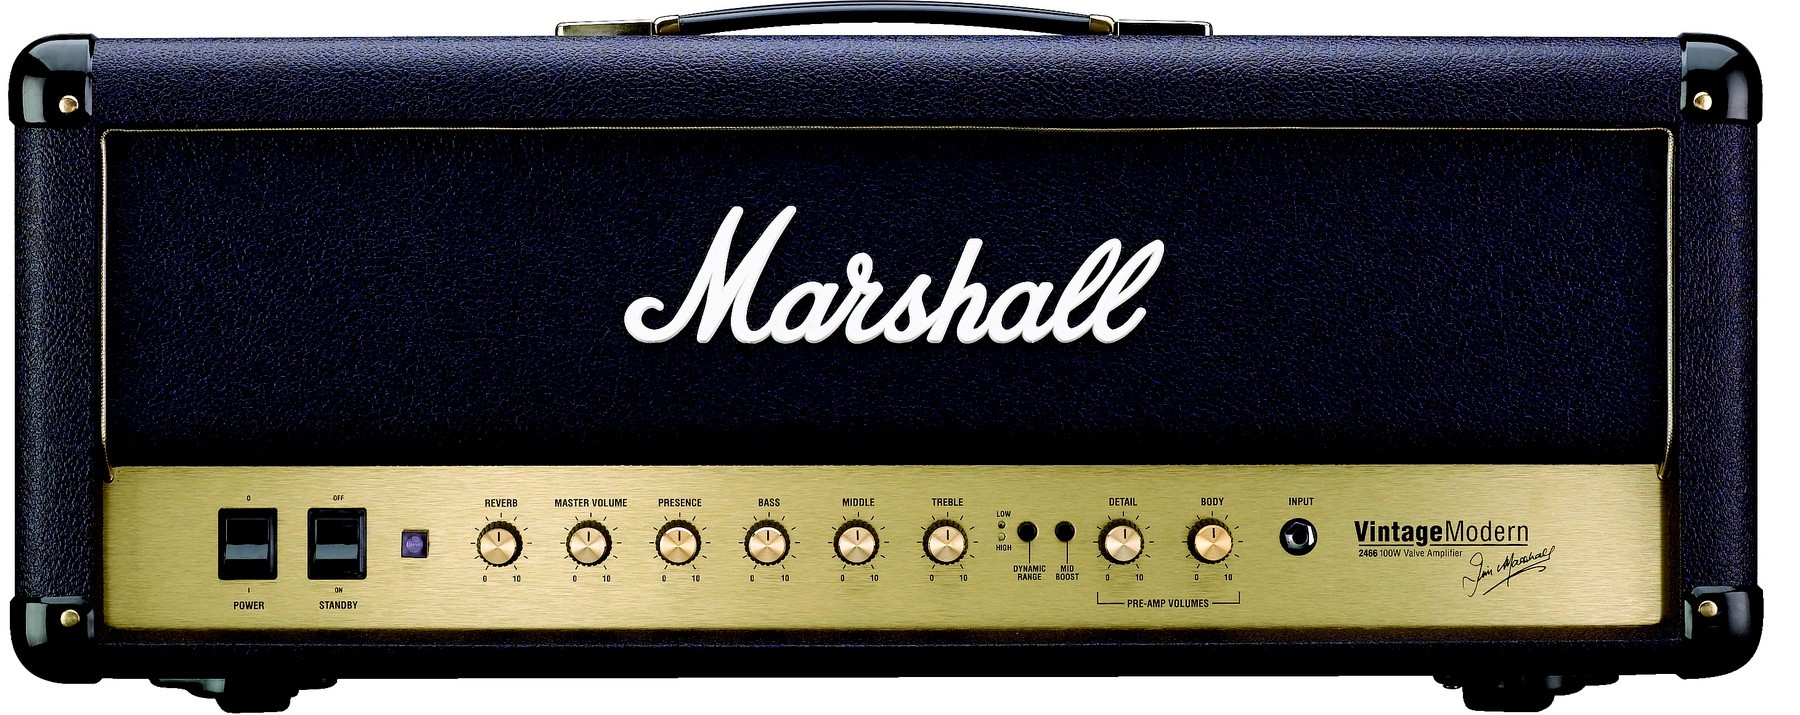 Modified marshall vintage modern